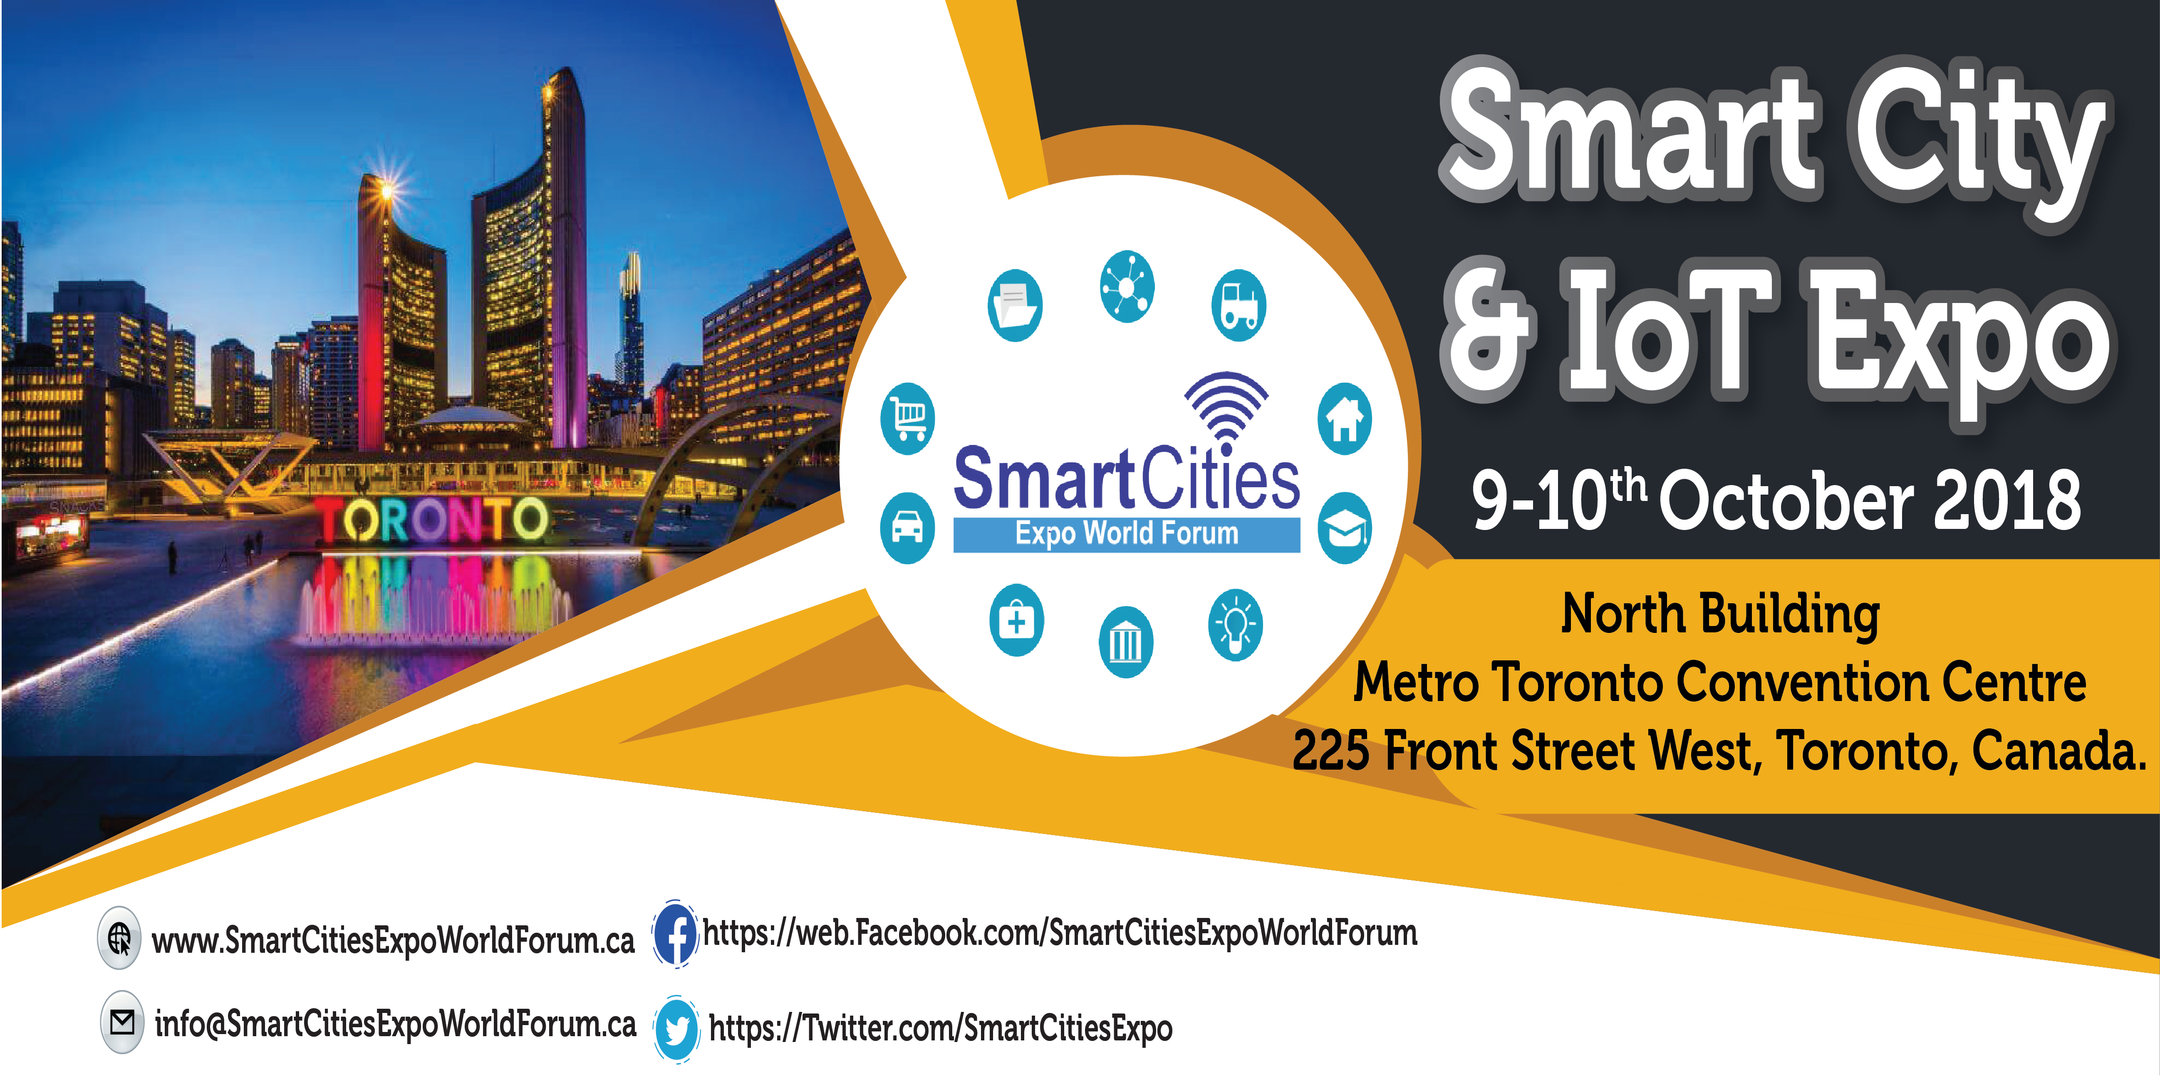 Smart City & IoT Expo 9-10 Oct. 2018, Metro Toronto Convention Center, Toronto, Canada.